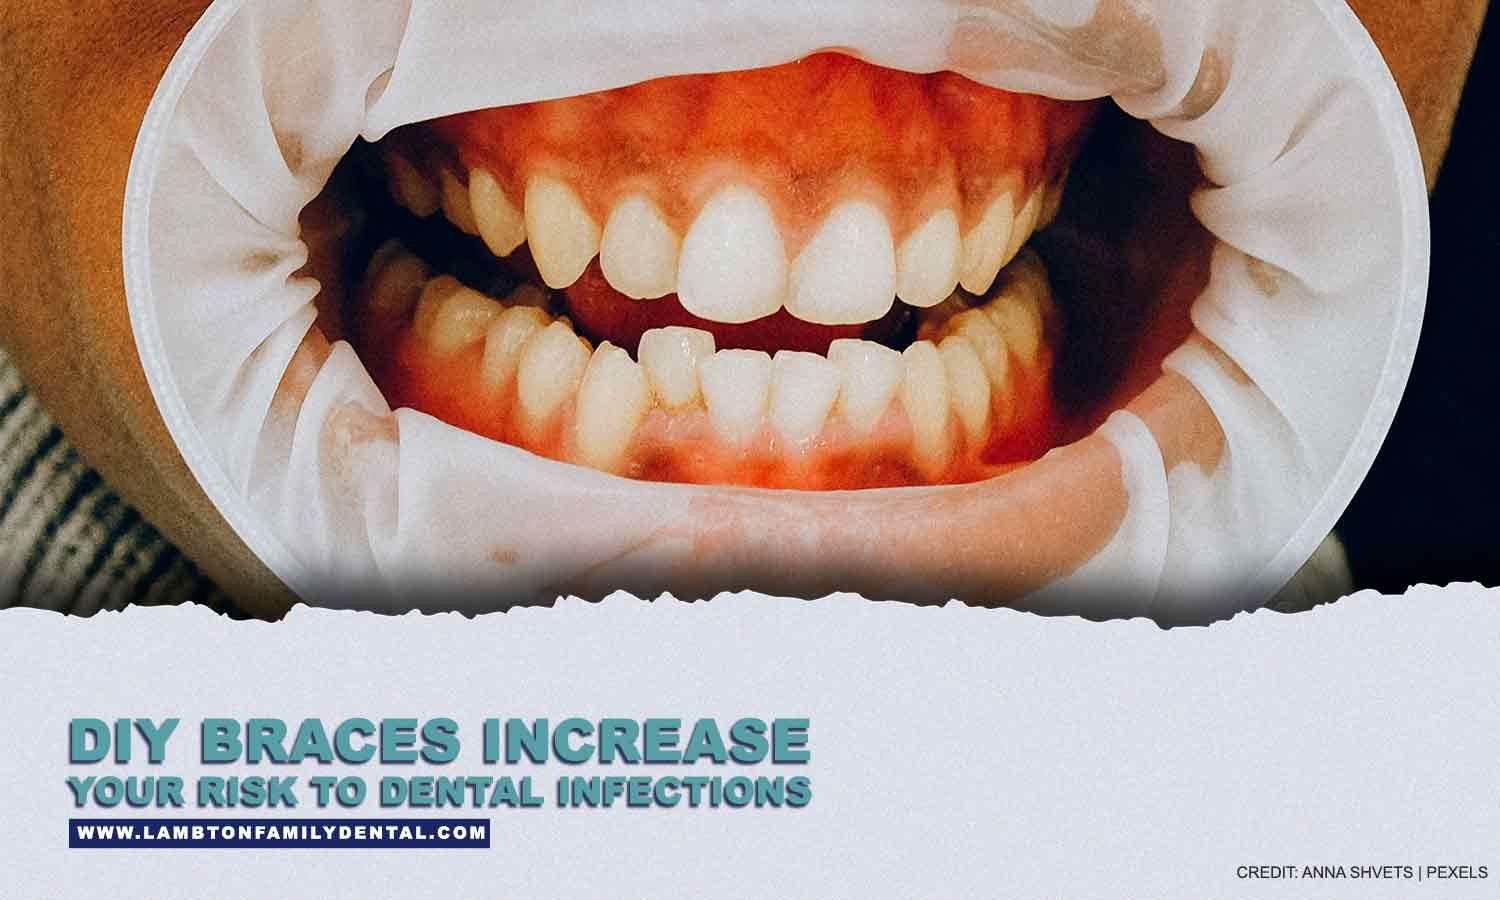 DIY braces increase your risk to dental infections